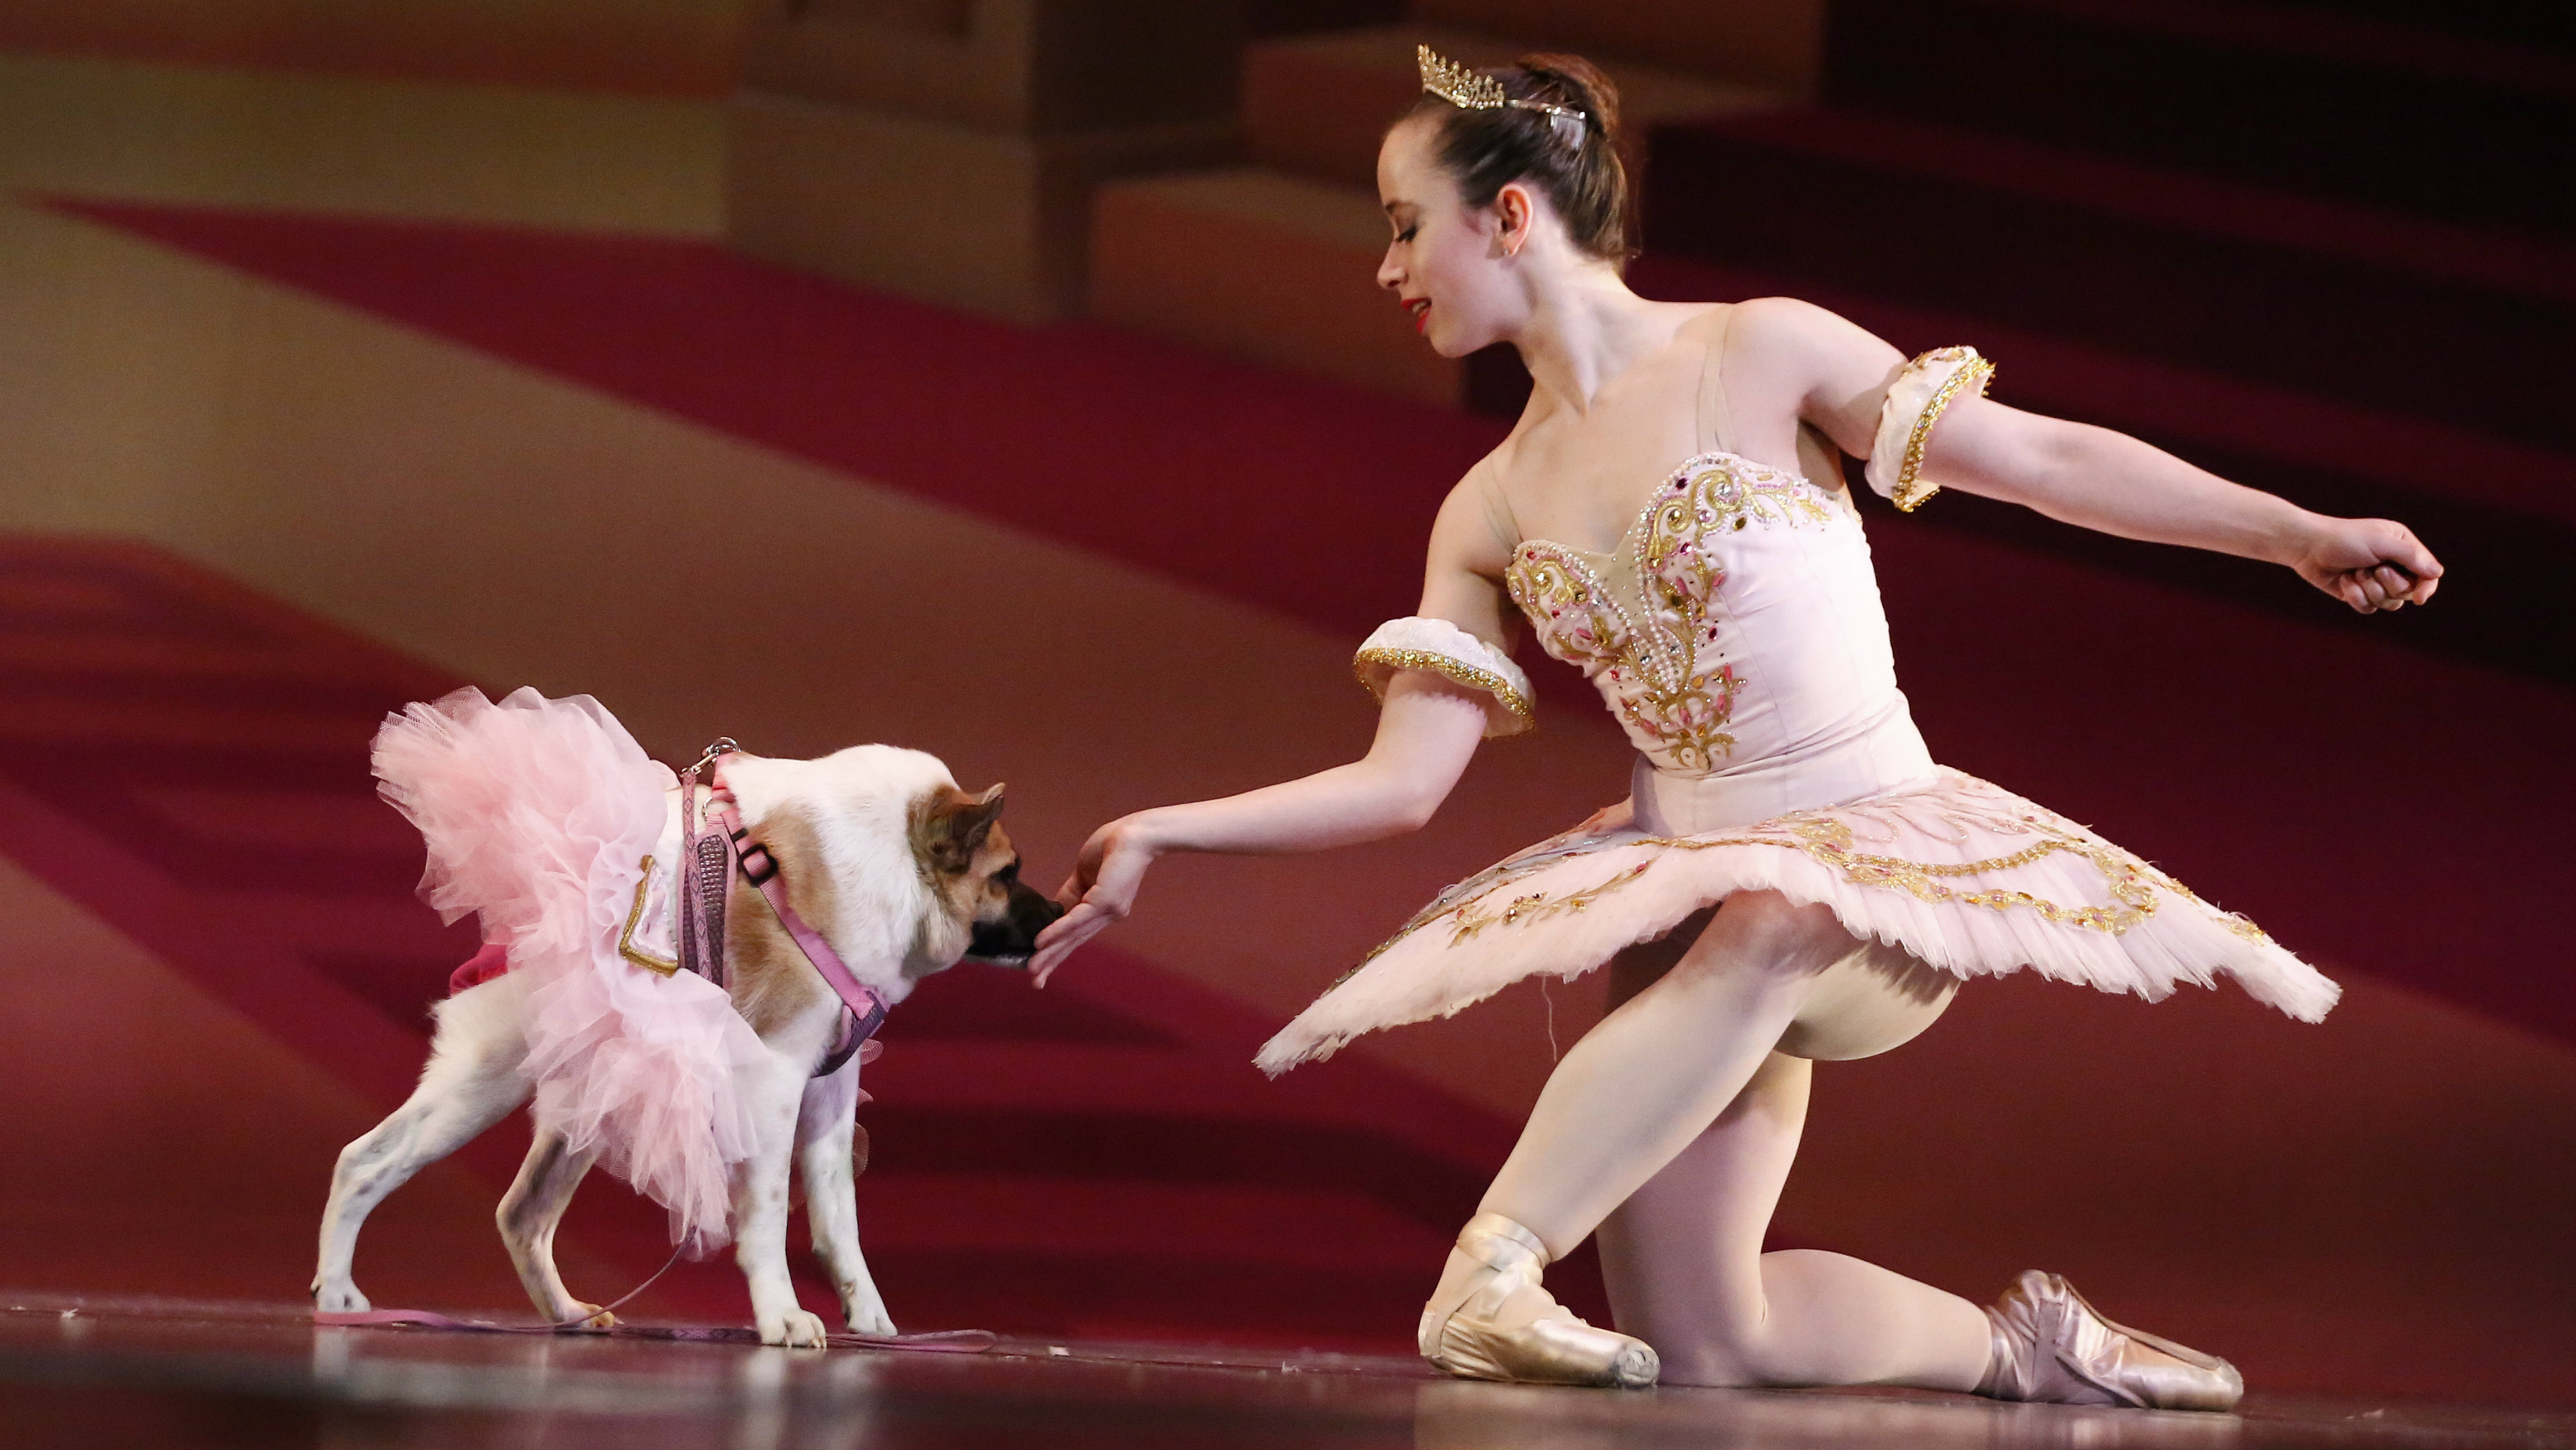 "In a Thursday, Dec. 8, 2016 photo, performing as the Sugar Plum Fairy, Katherine Free, left, dances with Pig, the dog, during the Birmingham's Ballet Mutt-cracker, a rendition of the famous ballet ""The Nutcracker,"" in Birmingham, Ala. Pig was a featured performer, wearing a pink tutu and dancing alone with the Sugar Plum Fairy in Act 2. Born with a condition called short-spine syndrome, the 3-year-old dog hops somewhat like a frog to stand up and has hunched shoulders that make her gait appear somewhat gorilla-like. (AP Photo/Brynn Anderson)"